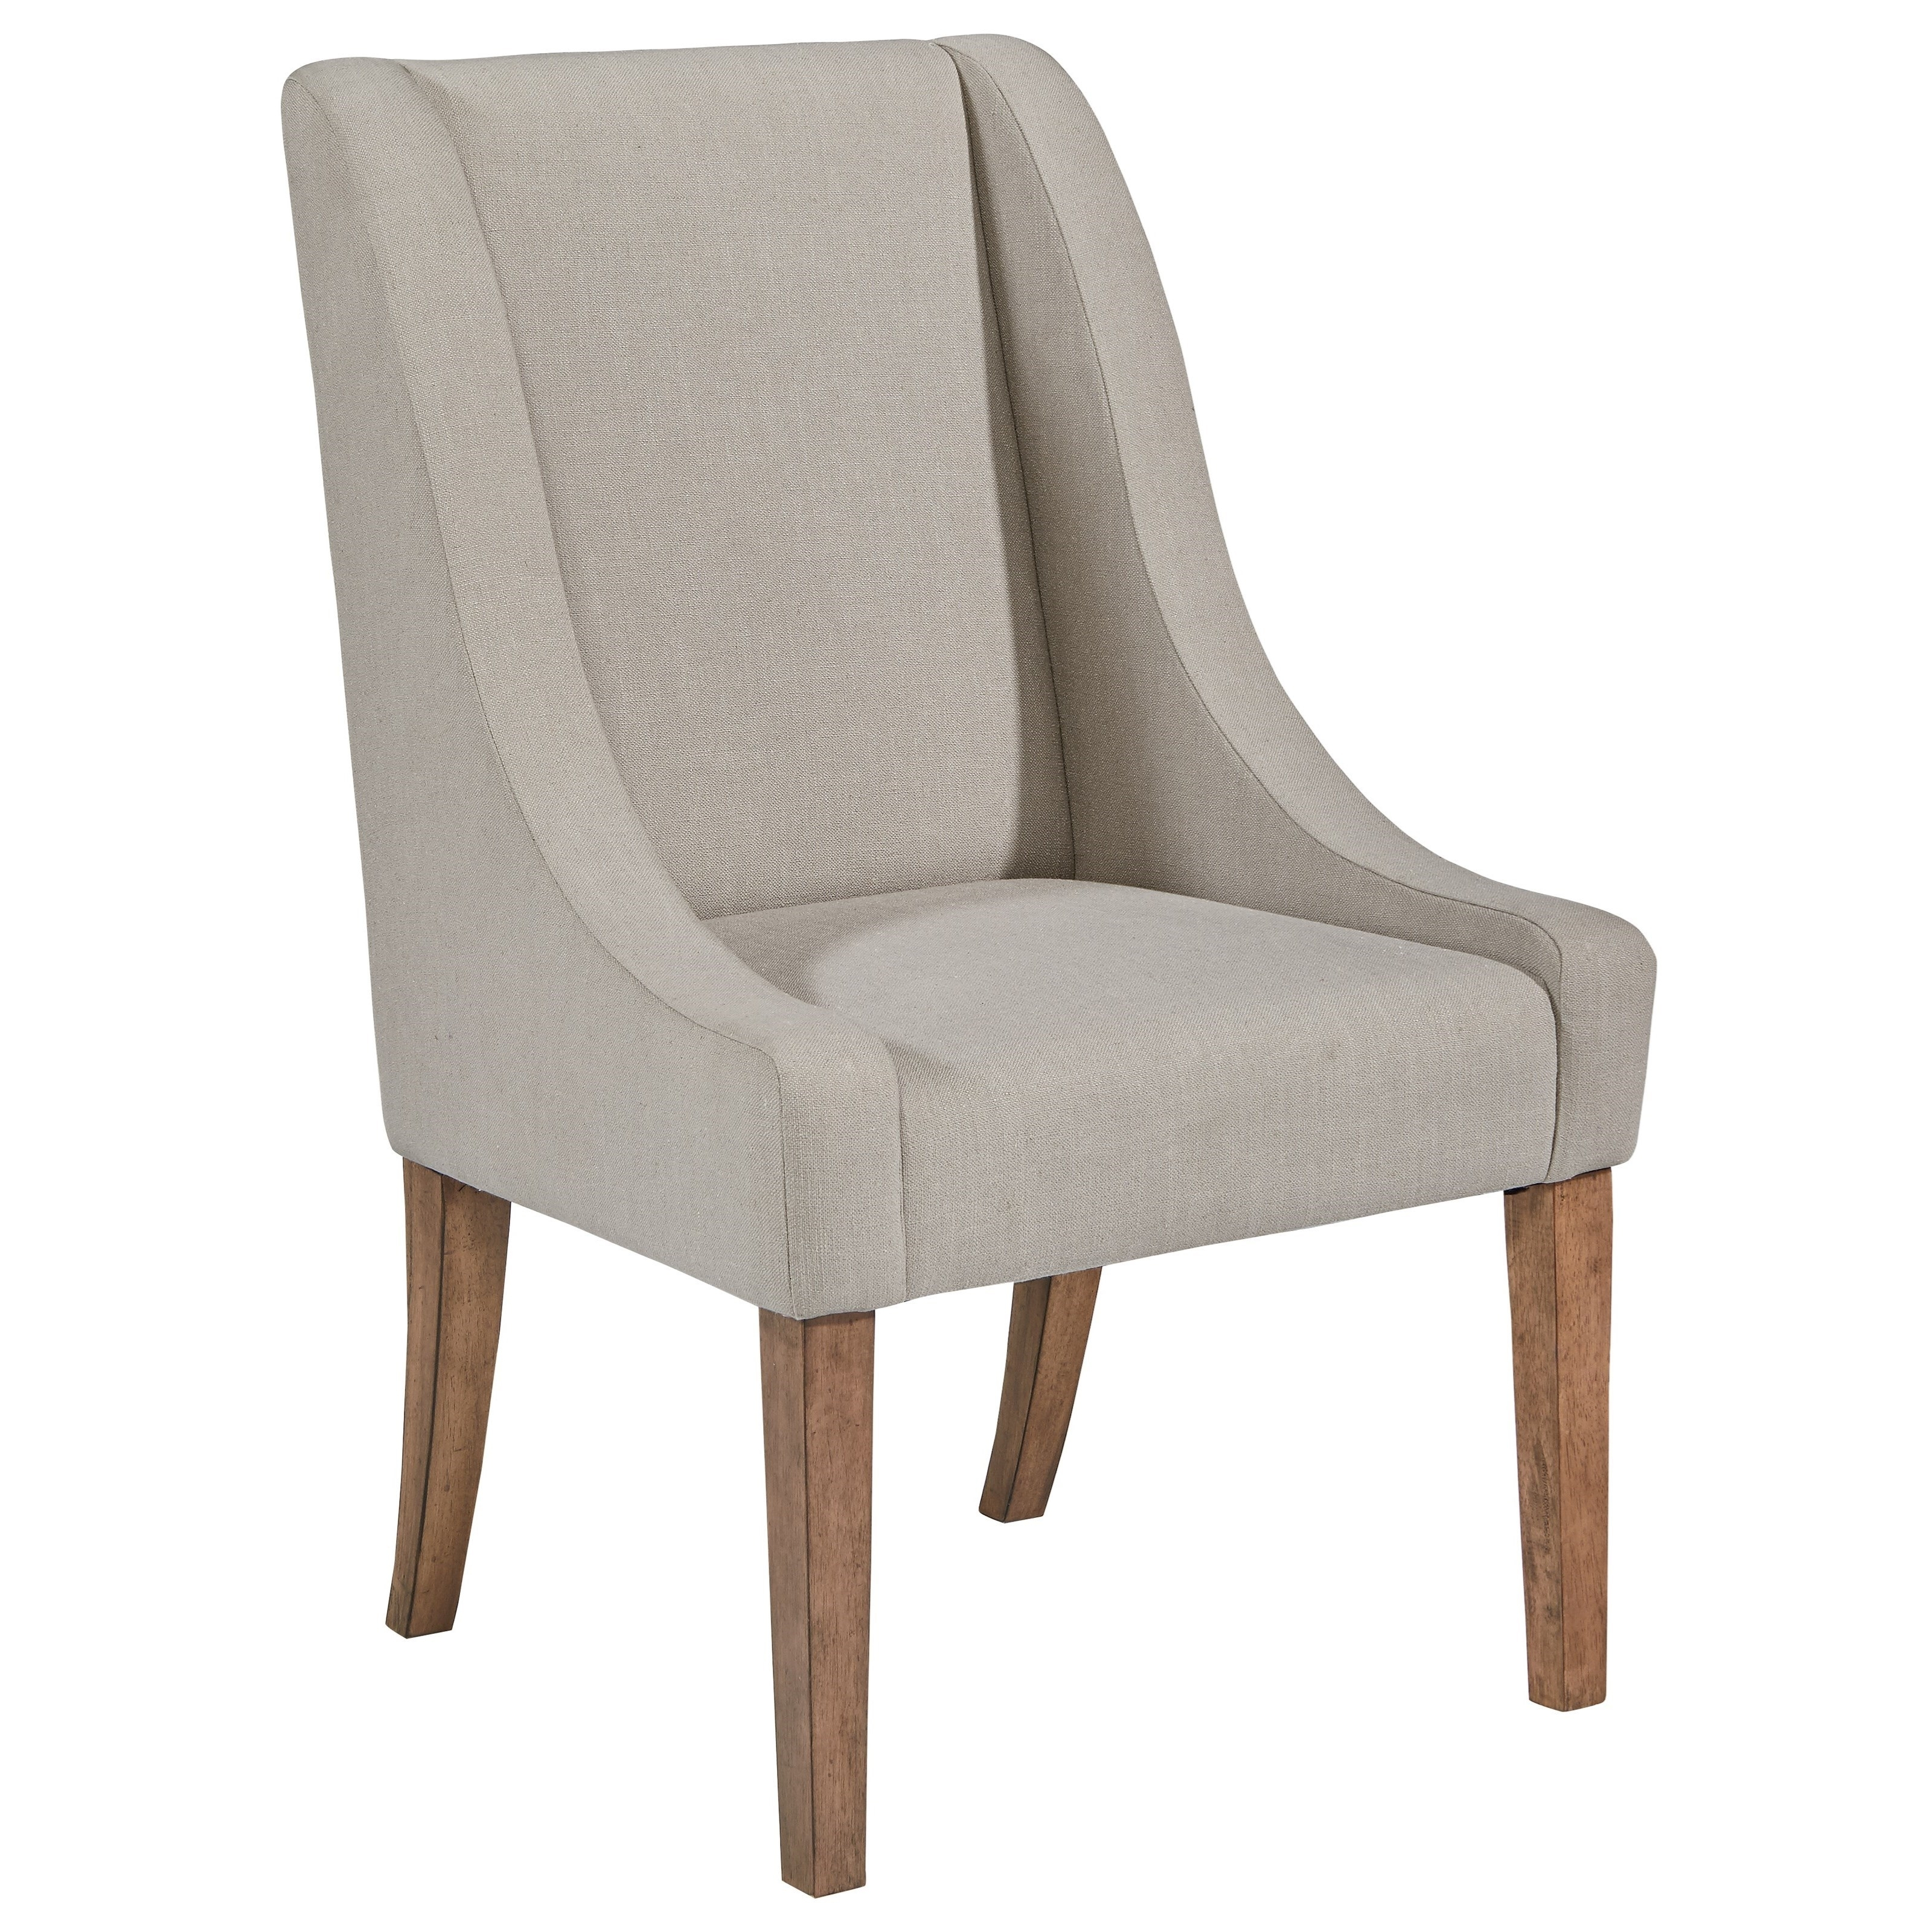 Inspiration about Well Known Magnolia Home Revival Side Chairs Pertaining To 6 Pc. Traditional Dining With Revival Chairsmagnolia Home (#9 of 20)